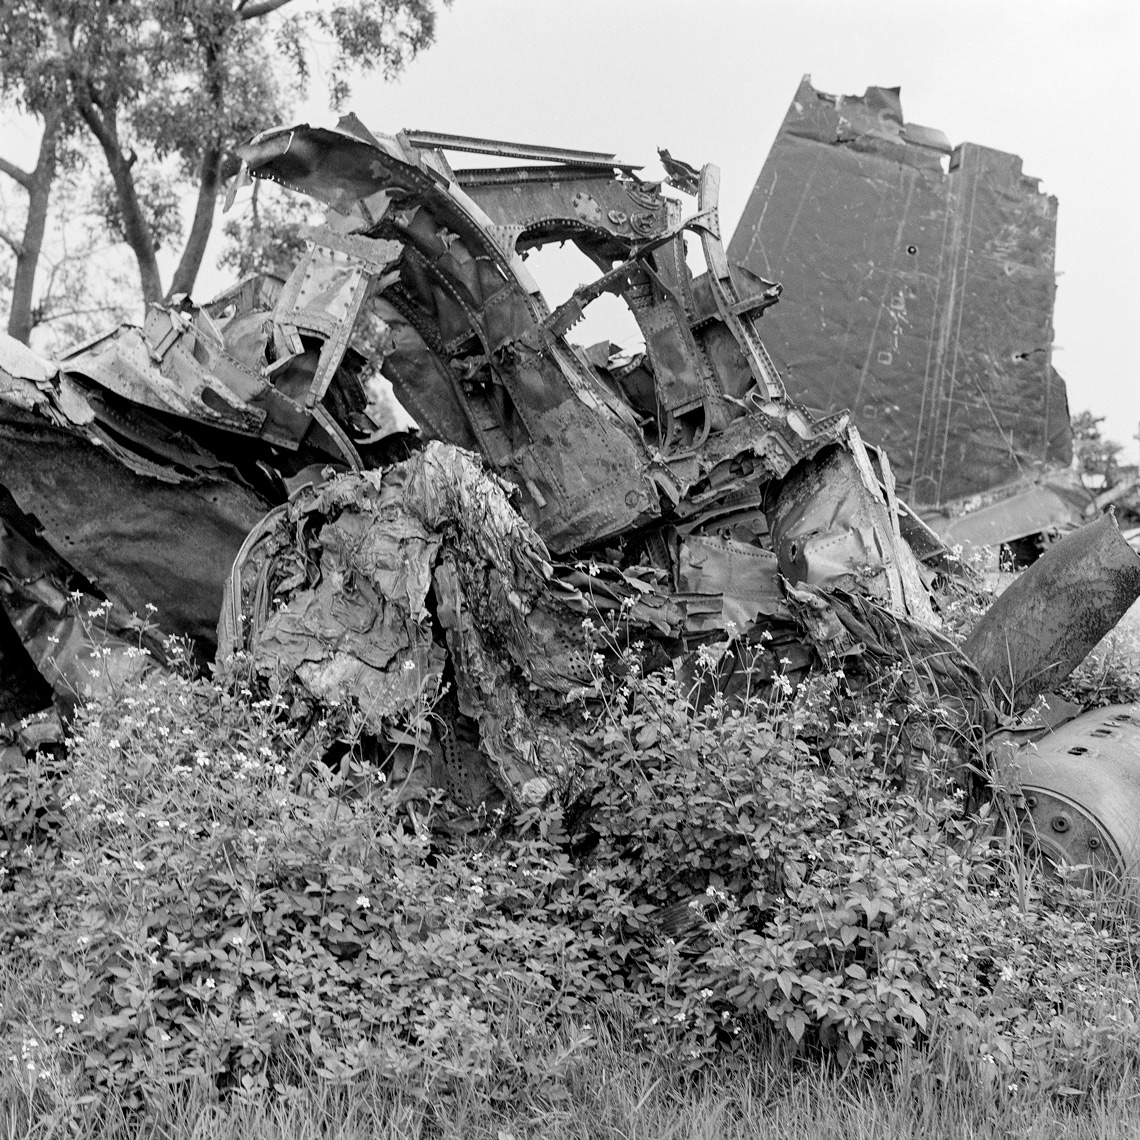 B-52 Wreckage, Ha Noi,  VN, 1991